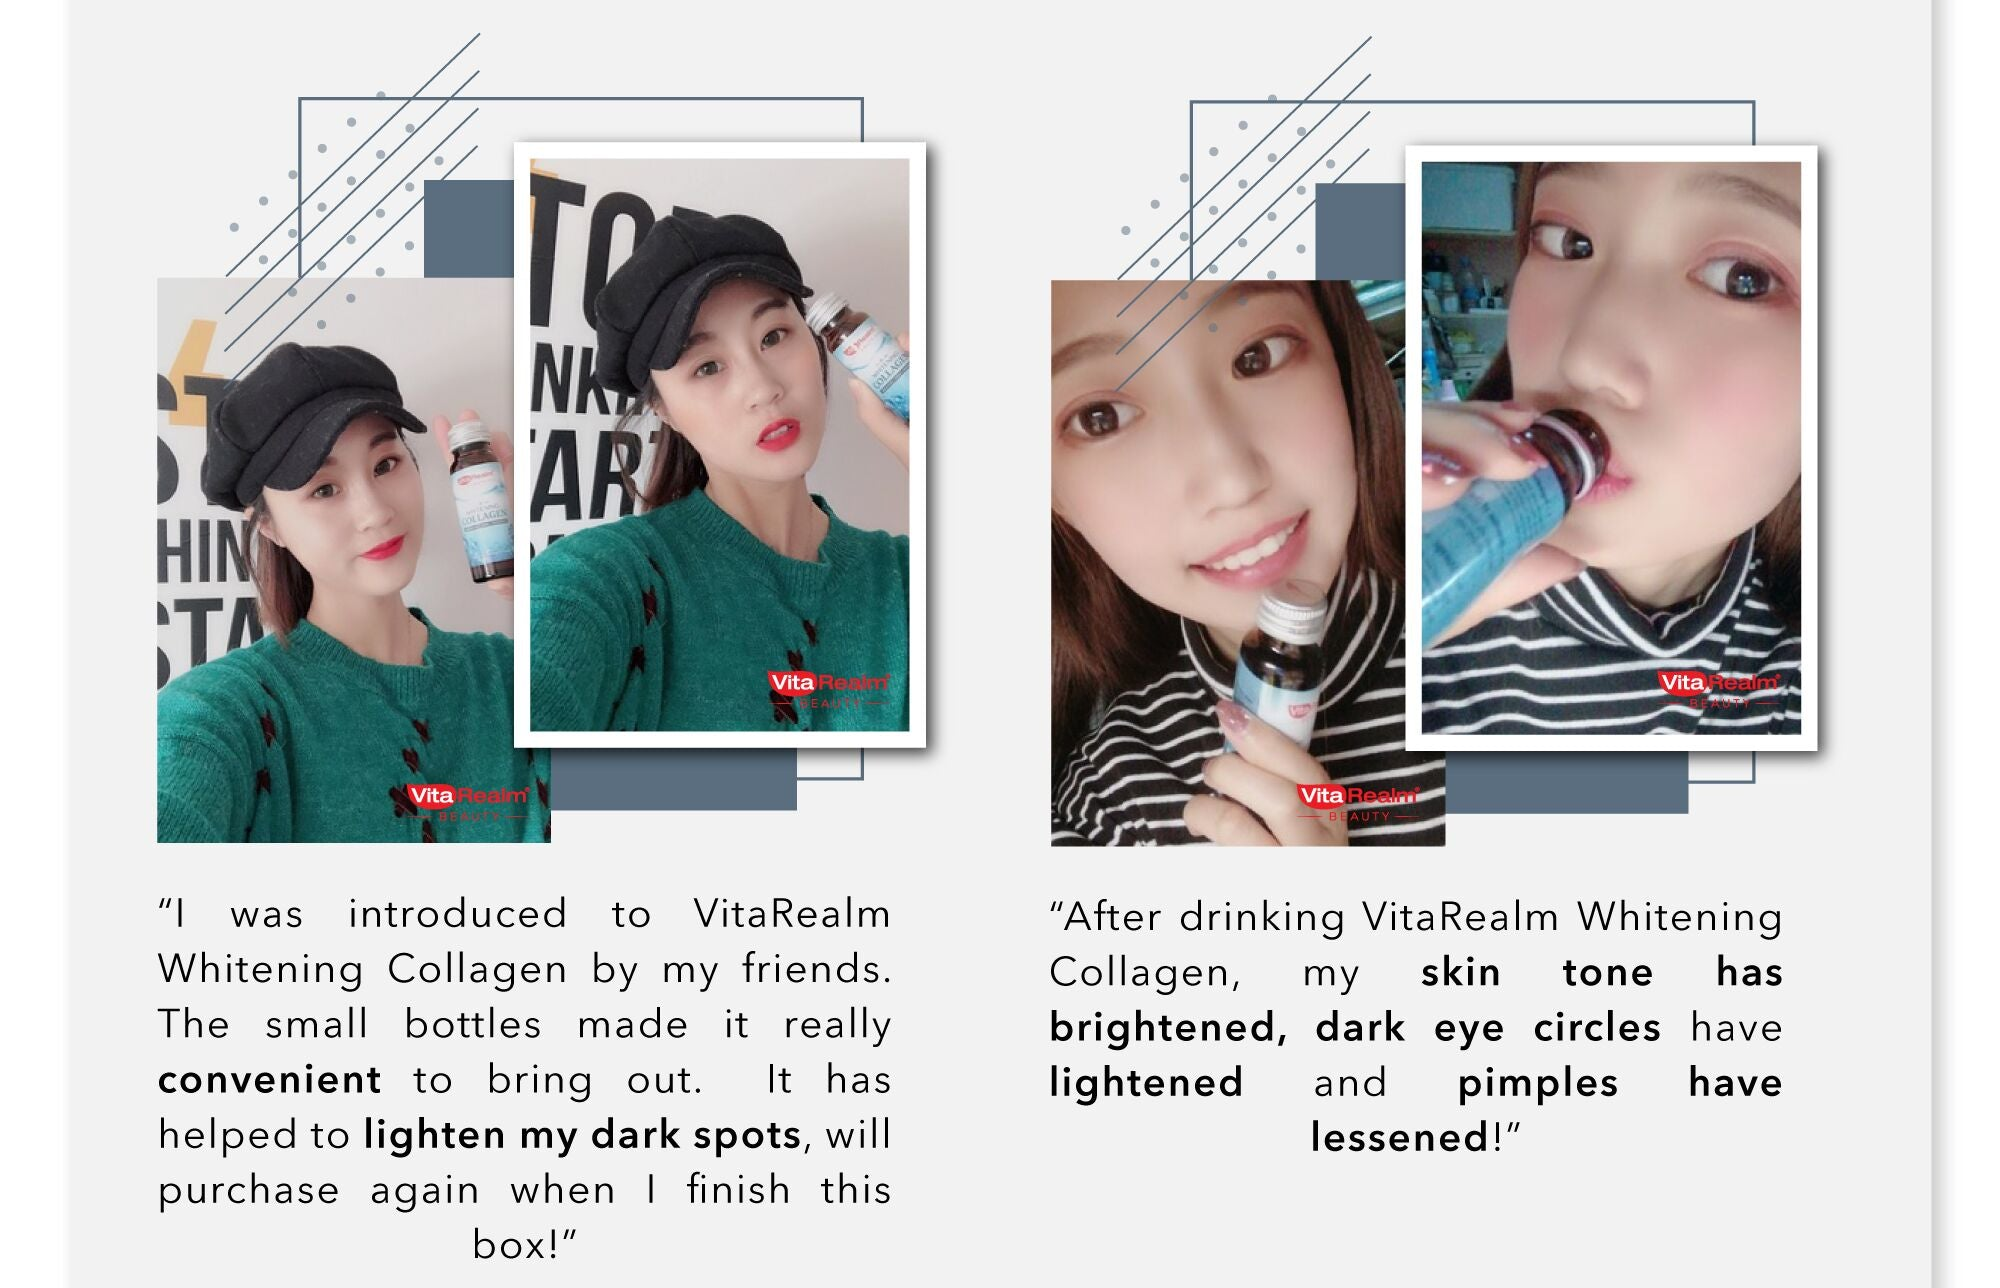 Drink Vitarealm Whitening Collagen and see results in 14 days.